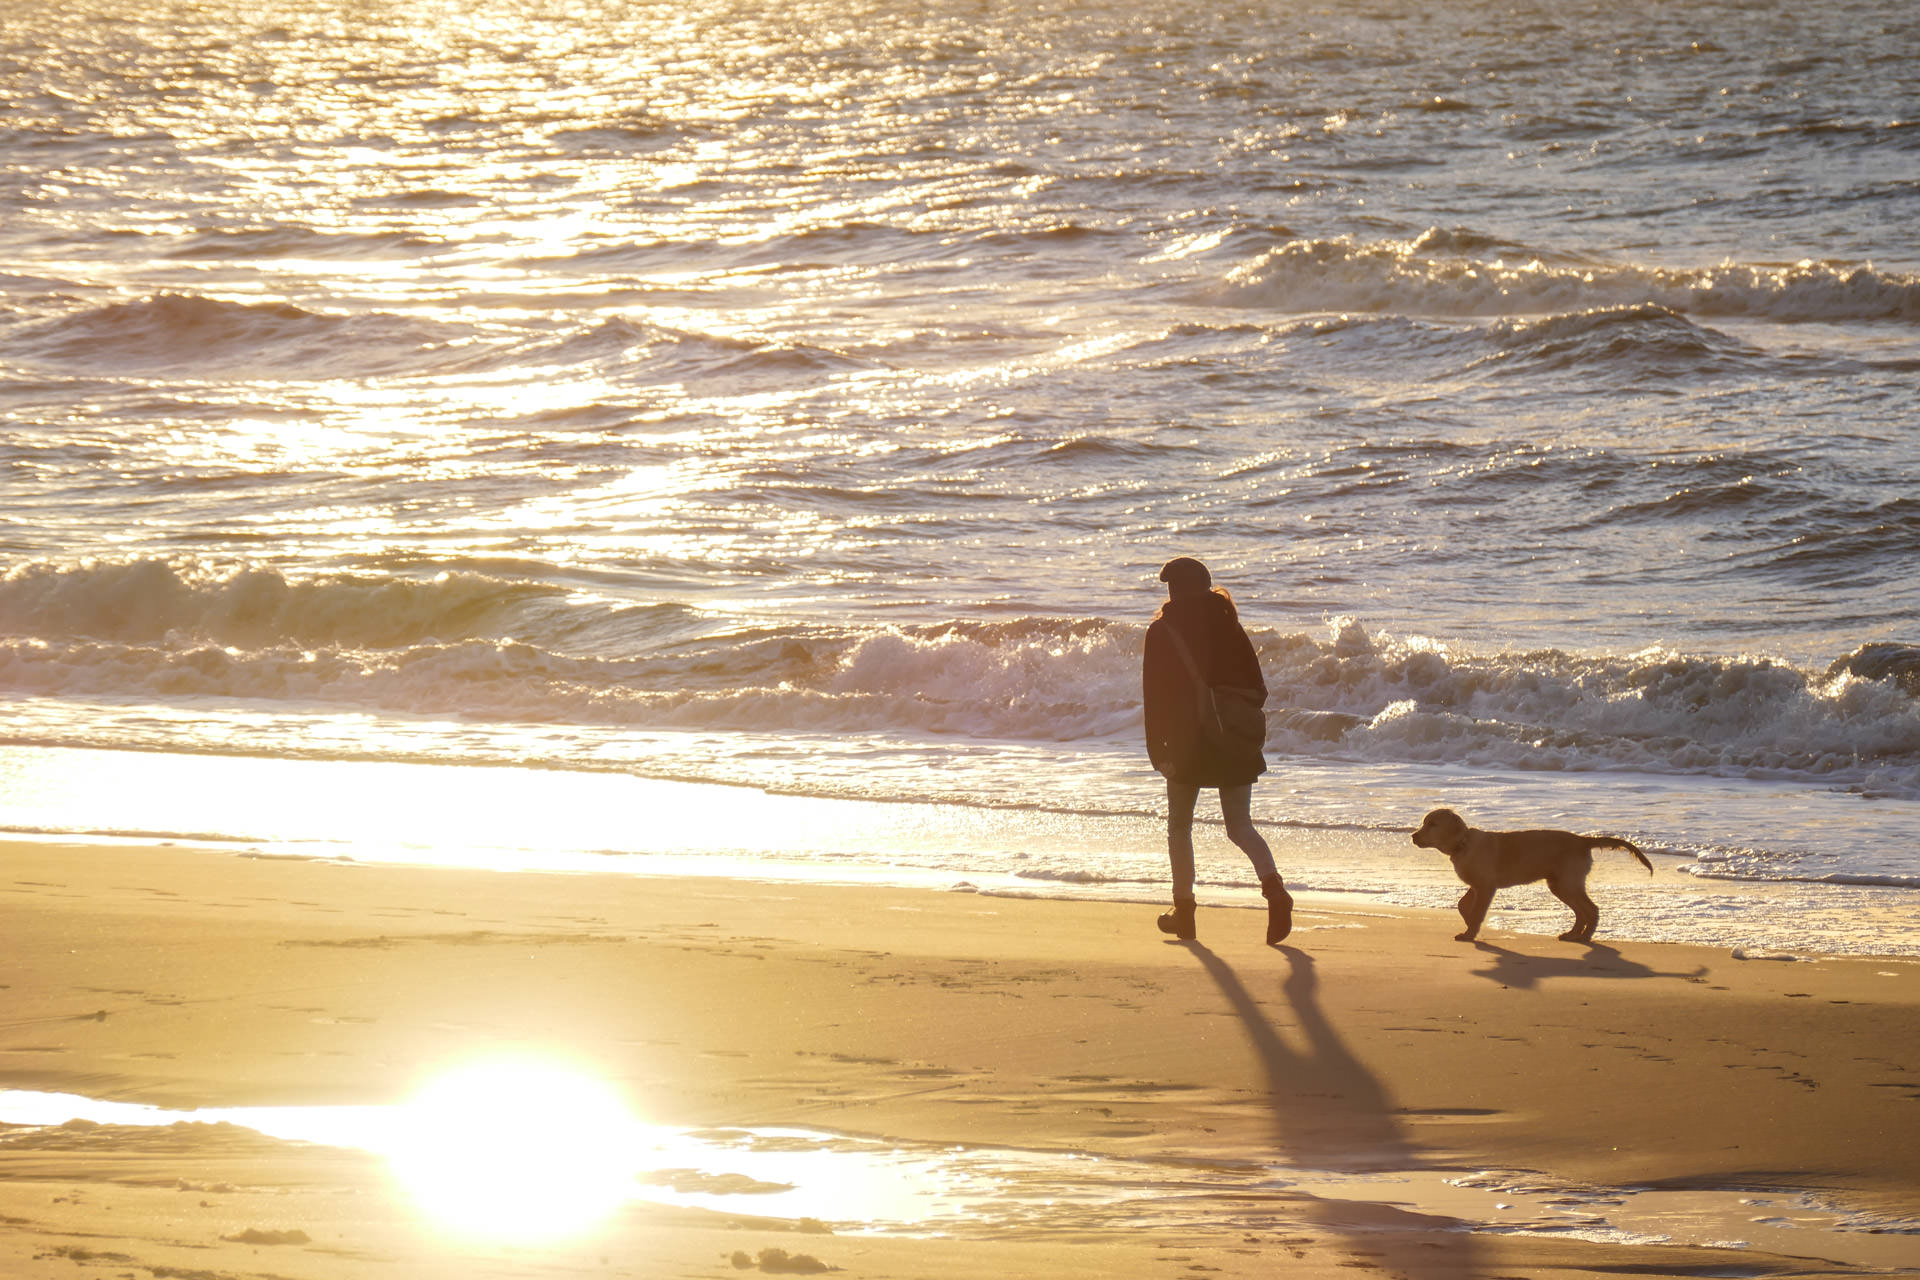 Dogs-and-Kids-Ueber-mich-Claudia-Peter-Plum-mit-Bodhi-im-Sonnenuntergang